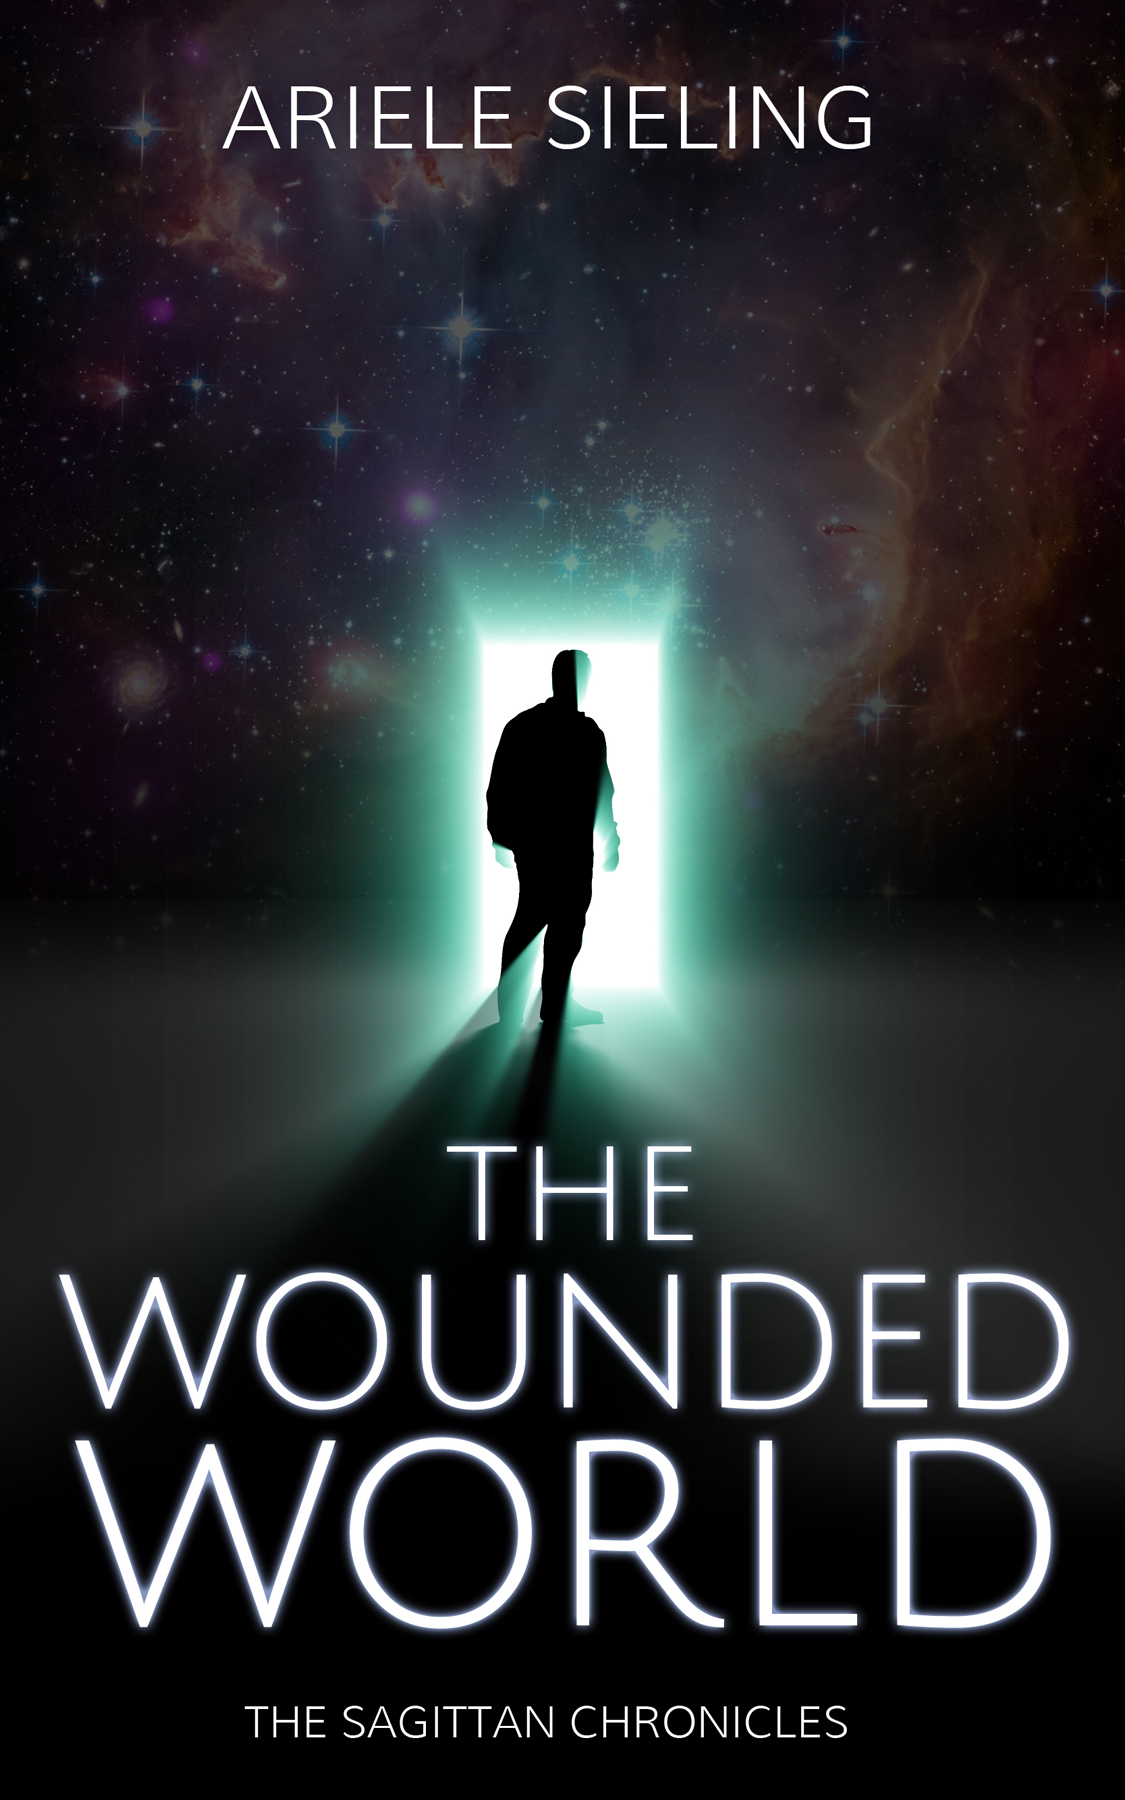 The book cover for The Wounded World, by Ariele Sieling